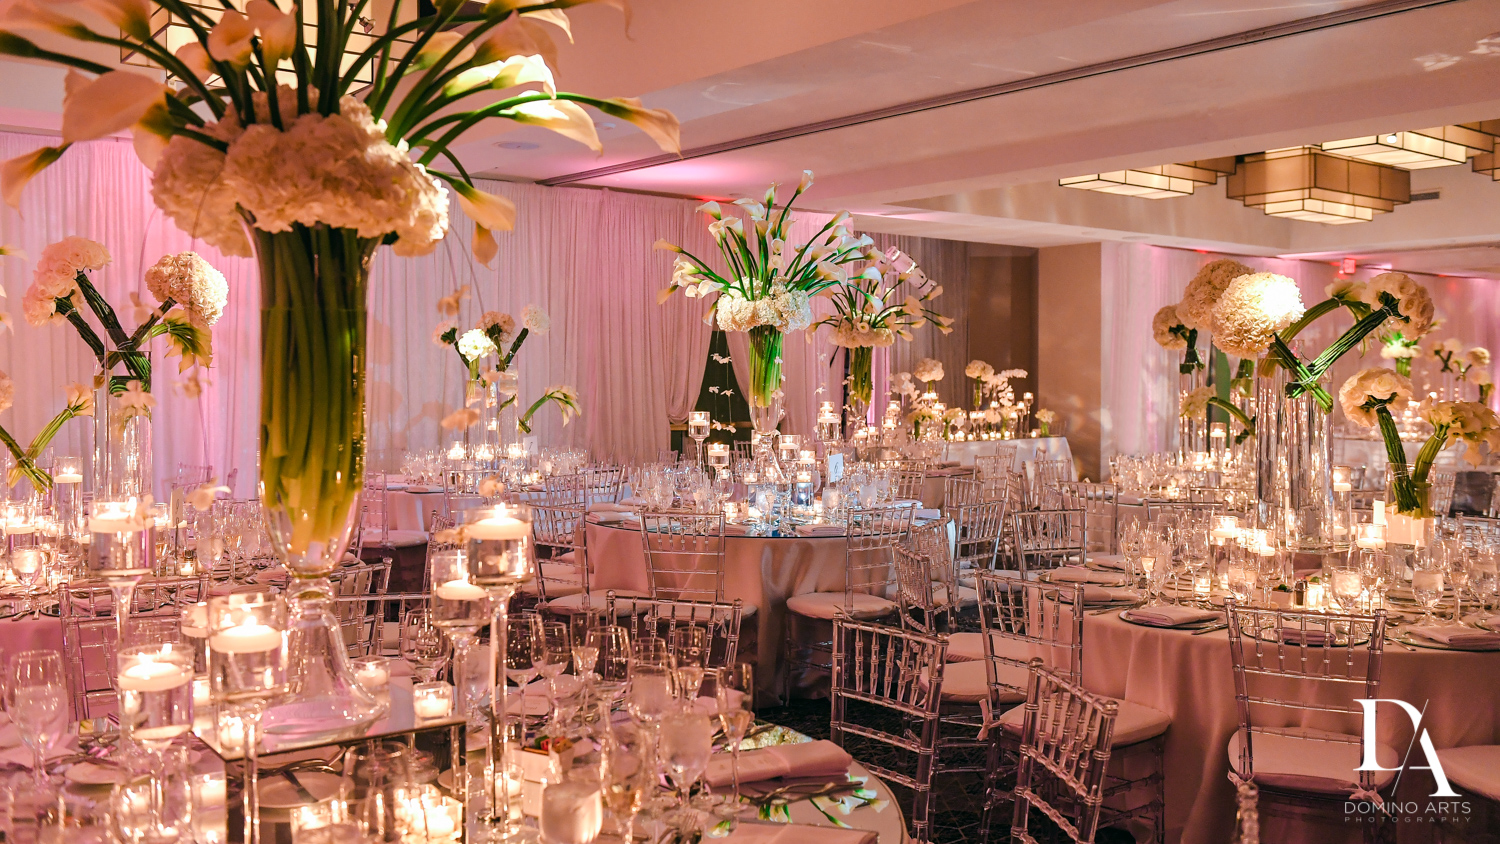 amazing decor at Wedding at Boca Rio Golf Club by Domino Arts Photography